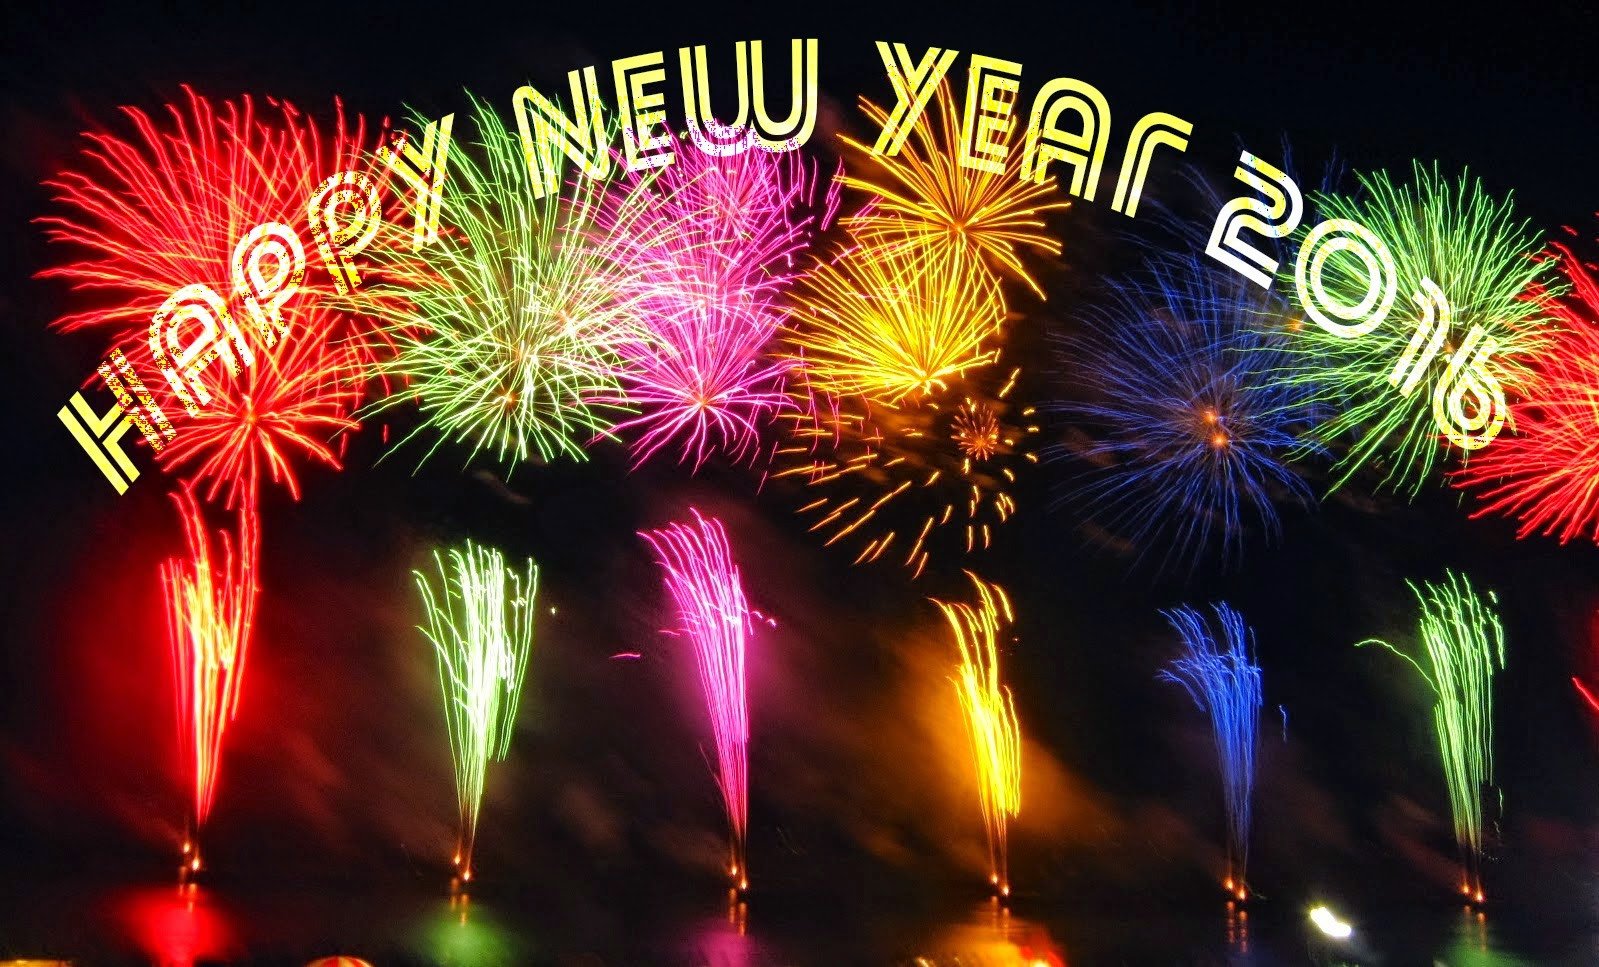 Tableau Expert Info: Wish You Happy New Year 2016